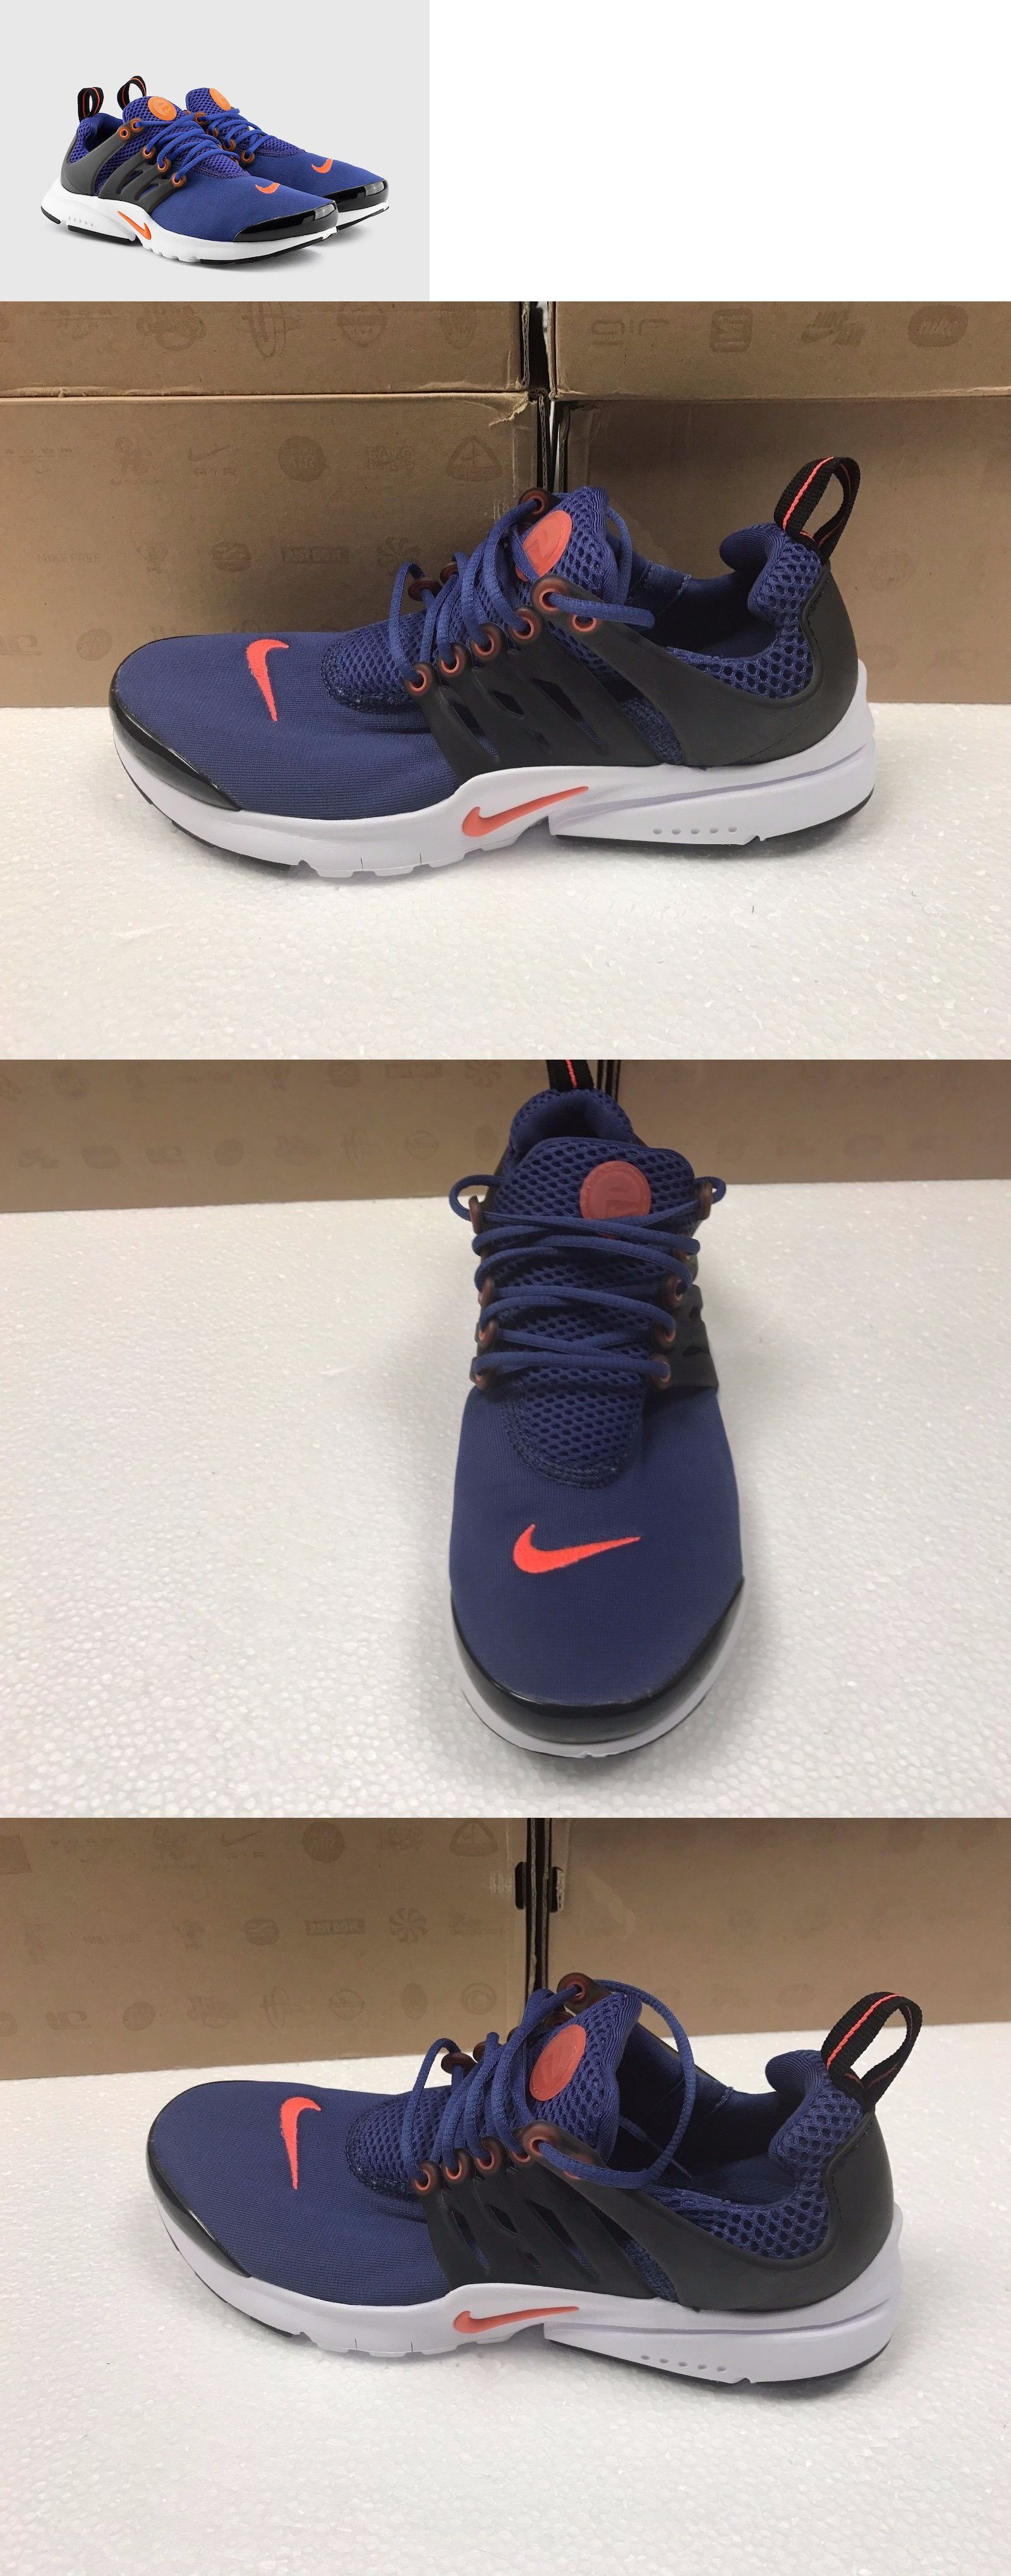 82adcf240bd5 Boys Shoes 57929  New Boys Nike Presto (Gs) Kids Sneakers 833875 500-Size 4  -  BUY IT NOW ONLY   54.49 on eBay!